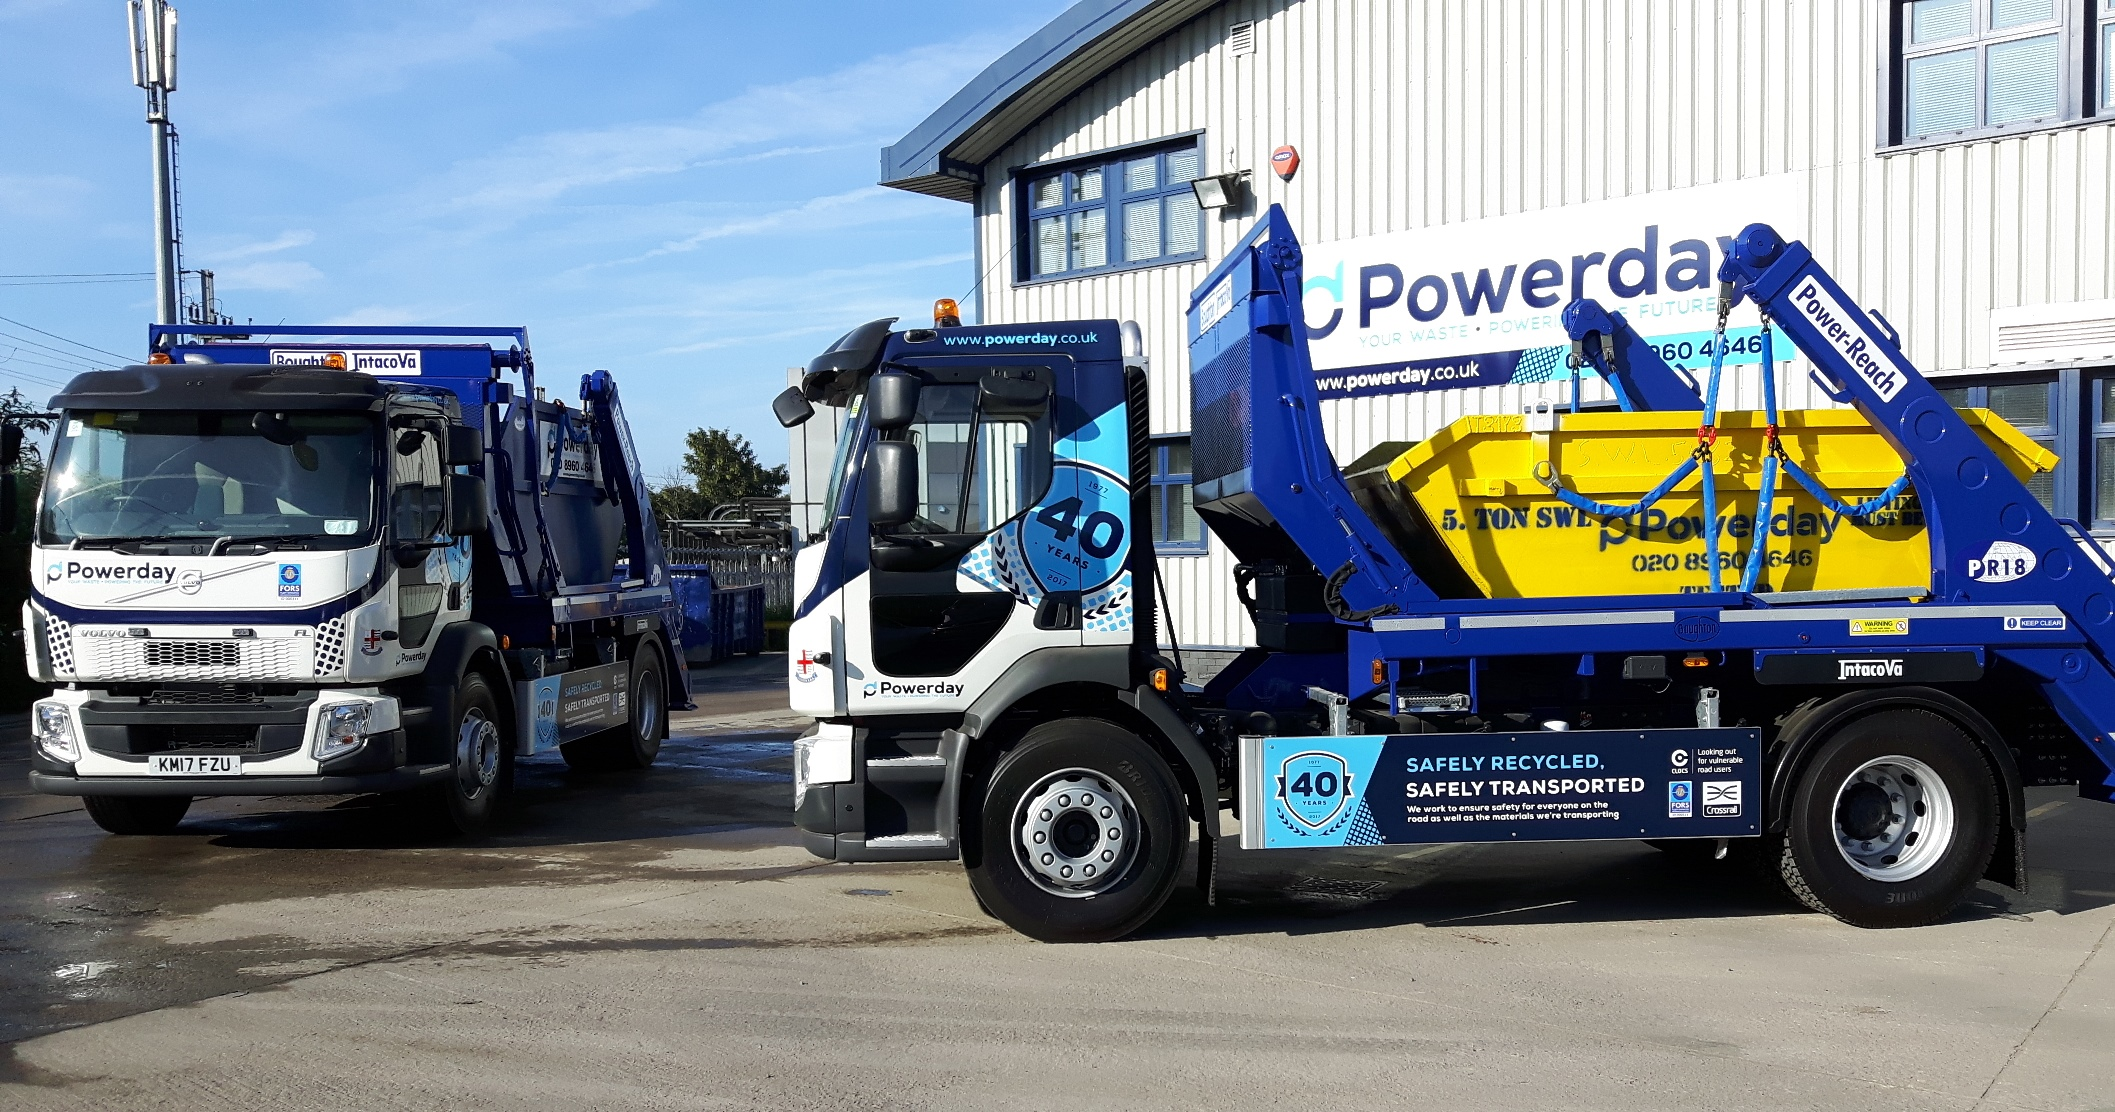 Powerday takes delivery of first in new state-of-the-art fleet